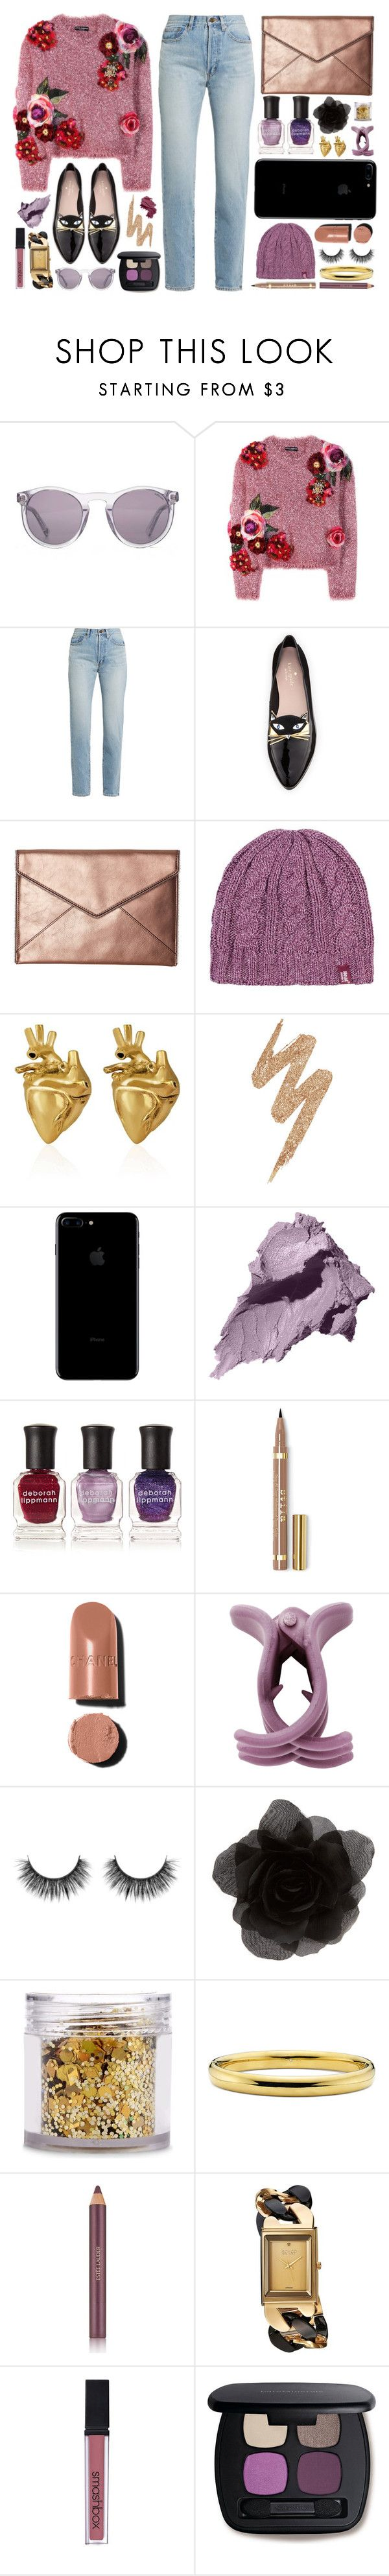 """Purple & Gold Cats"" by anushajean13 ❤ liked on Polyvore featuring HOOK LDN, Dolce&Gabbana, Yves Saint Laurent, Kate Spade, Rebecca Minkoff, Heat Holders, StrangeFruit, Urban Decay, Bobbi Brown Cosmetics and Deborah Lippmann"